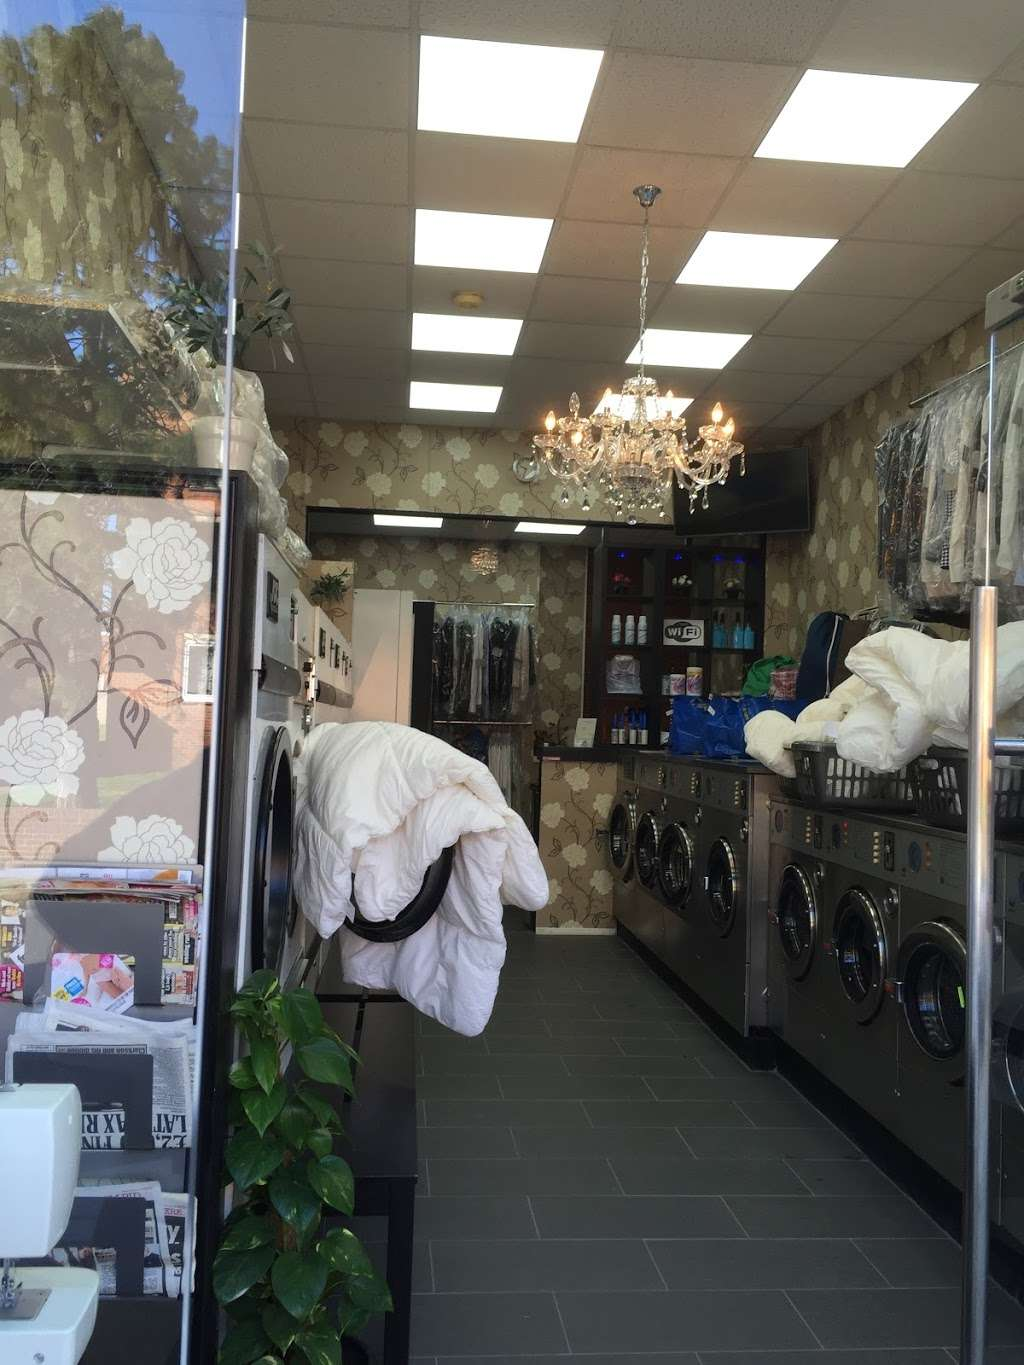 King Dry Cleaning & Laundrette - laundry  | Photo 7 of 10 | Address: 35 Church Rd, London NW4 4EB, UK | Phone: 020 8201 5050